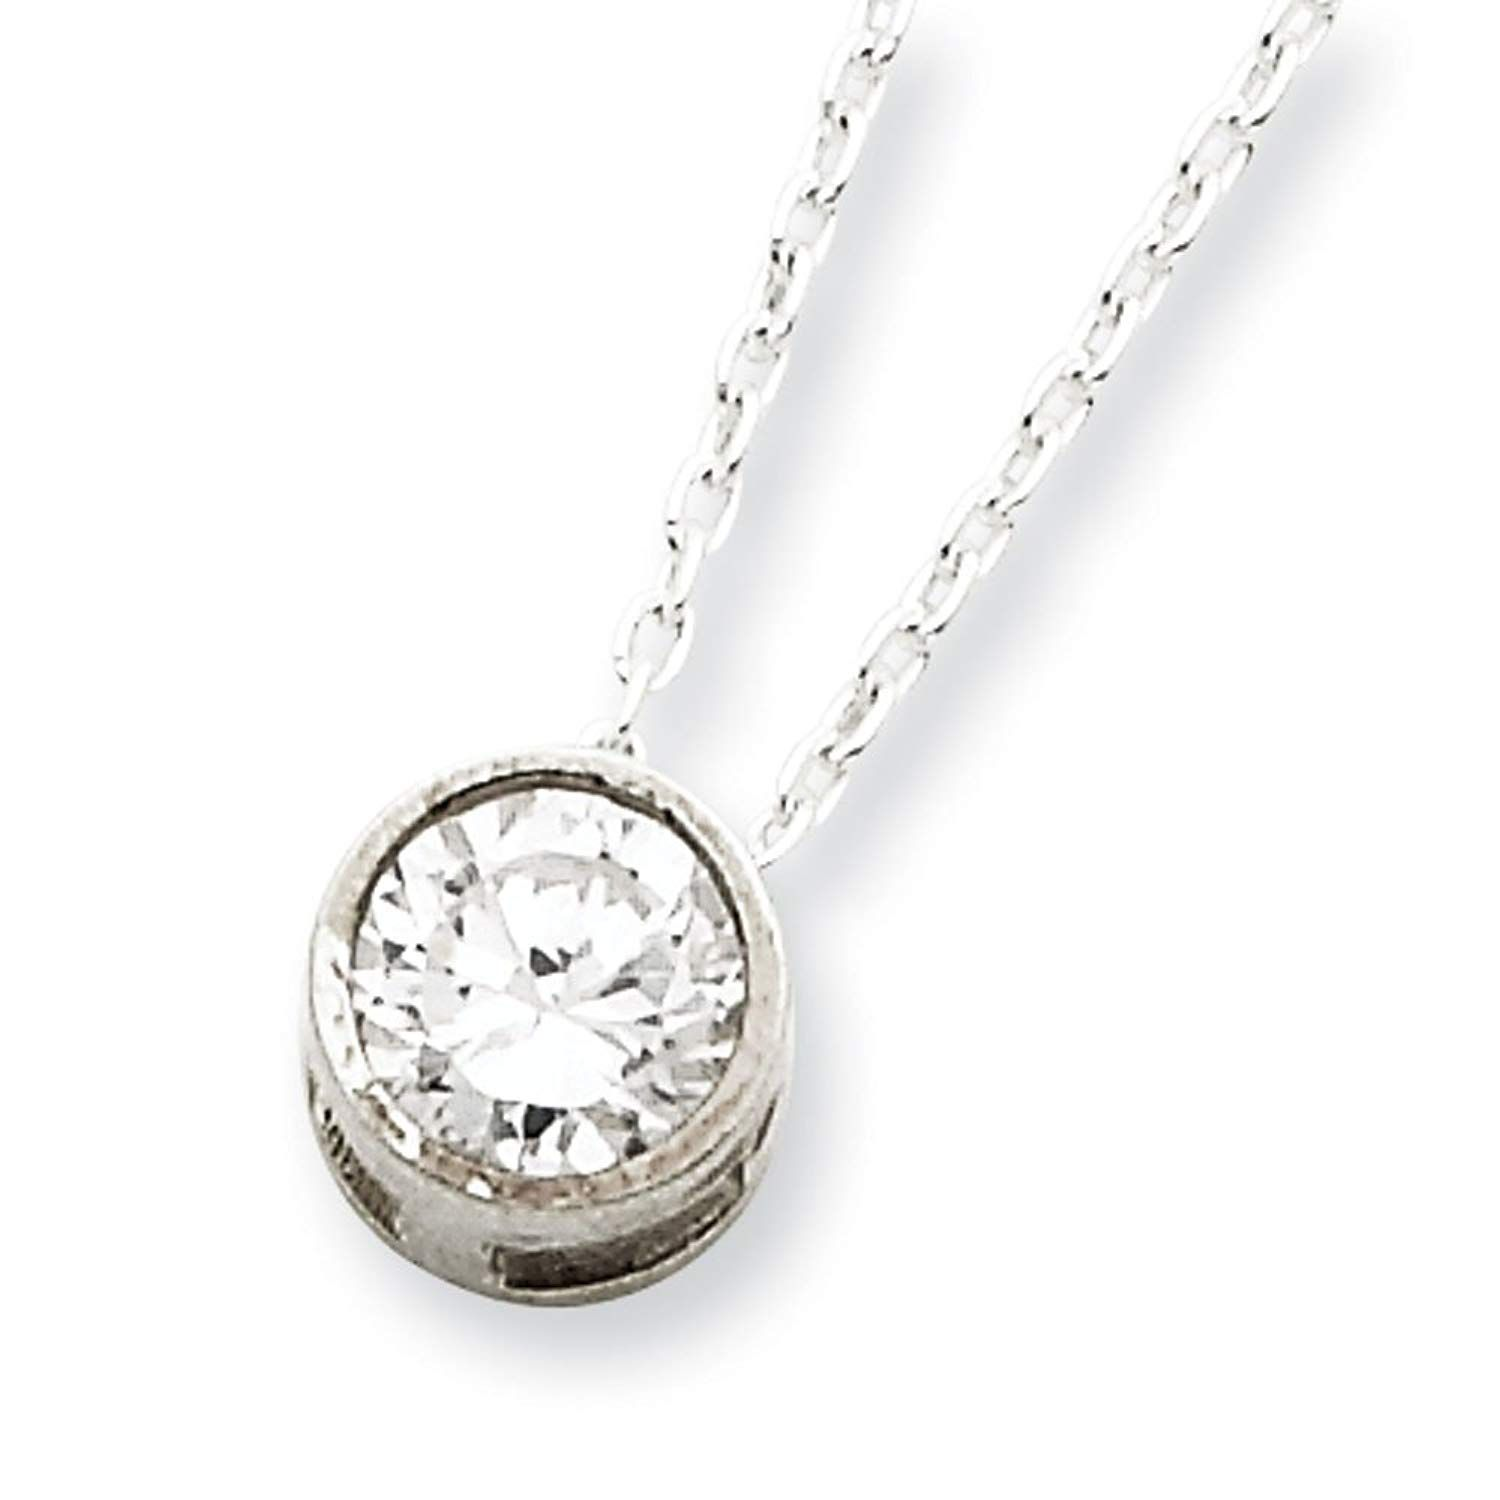 West Coast Jewelry Sterling Silver Cubic Zirconia Pendant On 16 Chain Necklace 16 Inch Sincerely H Chains Necklace Pendant Jewelry Cubic Zirconia Pendant